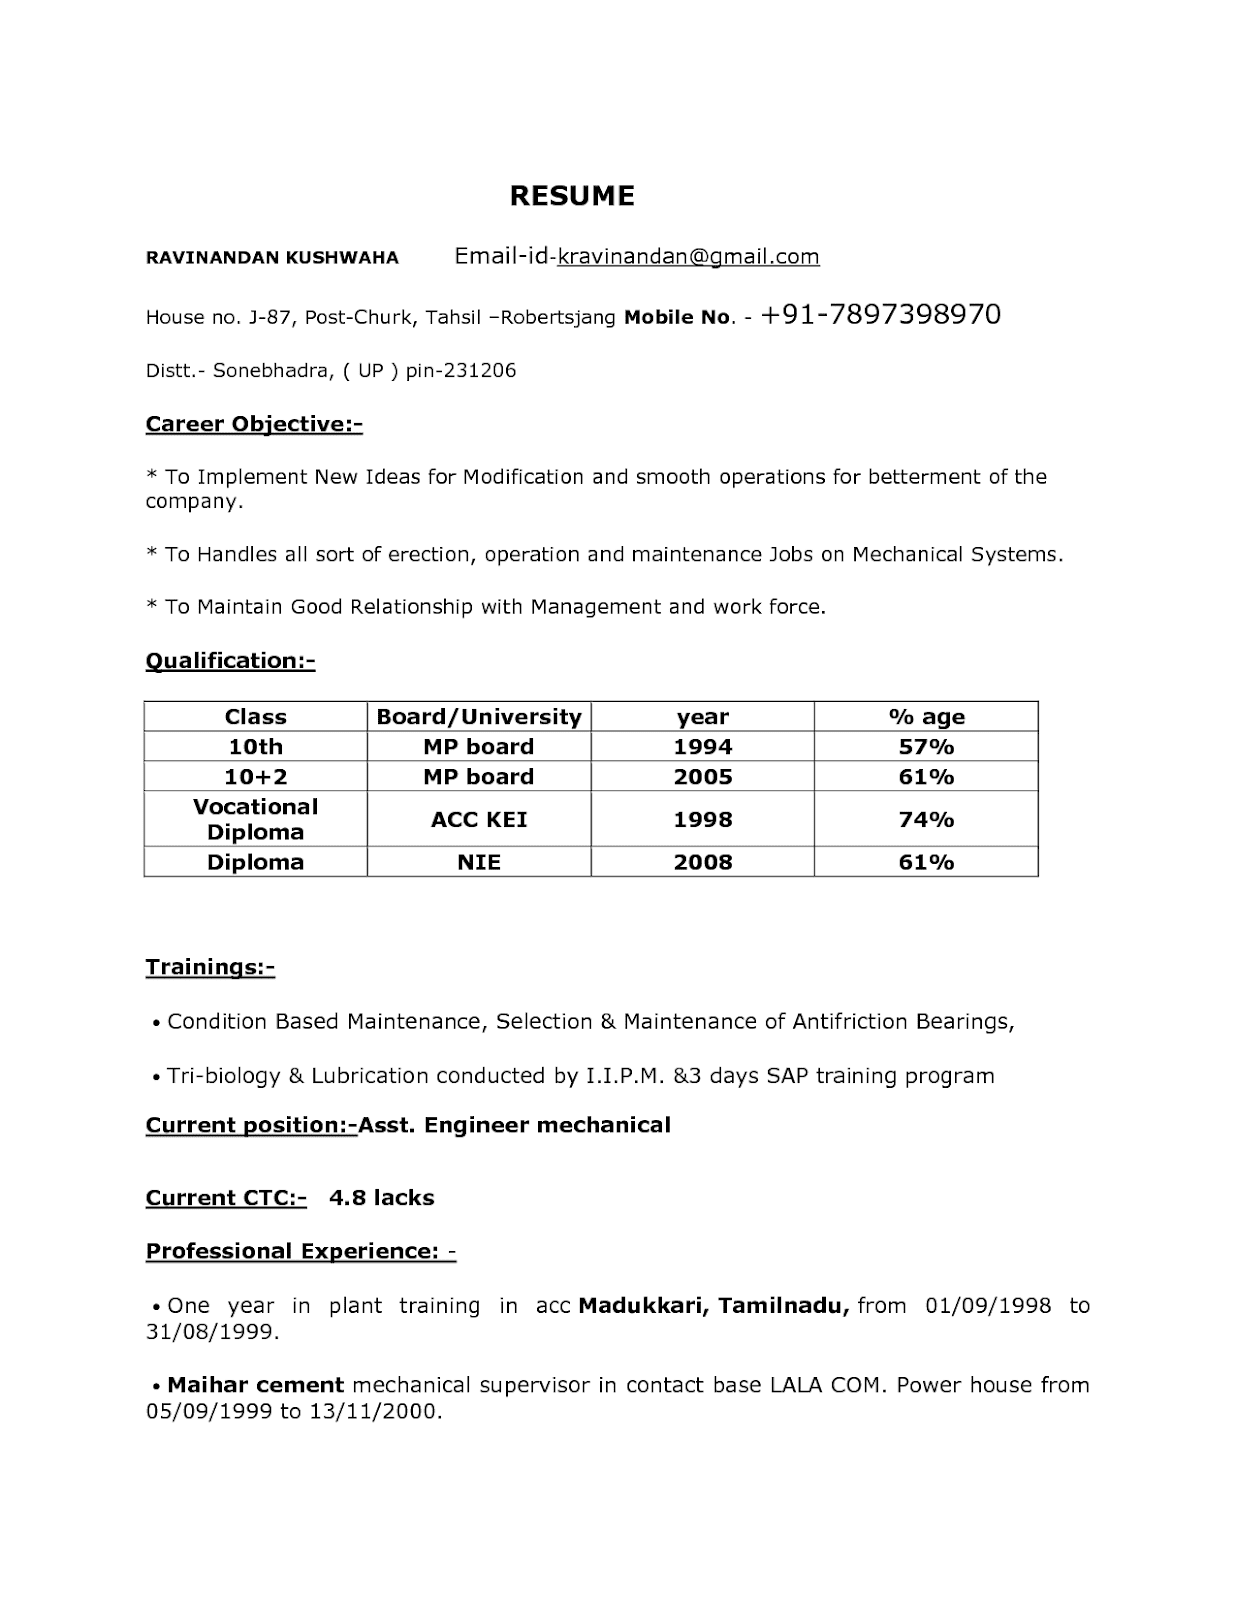 caregiver resume, caregiver resume sample, caregiver